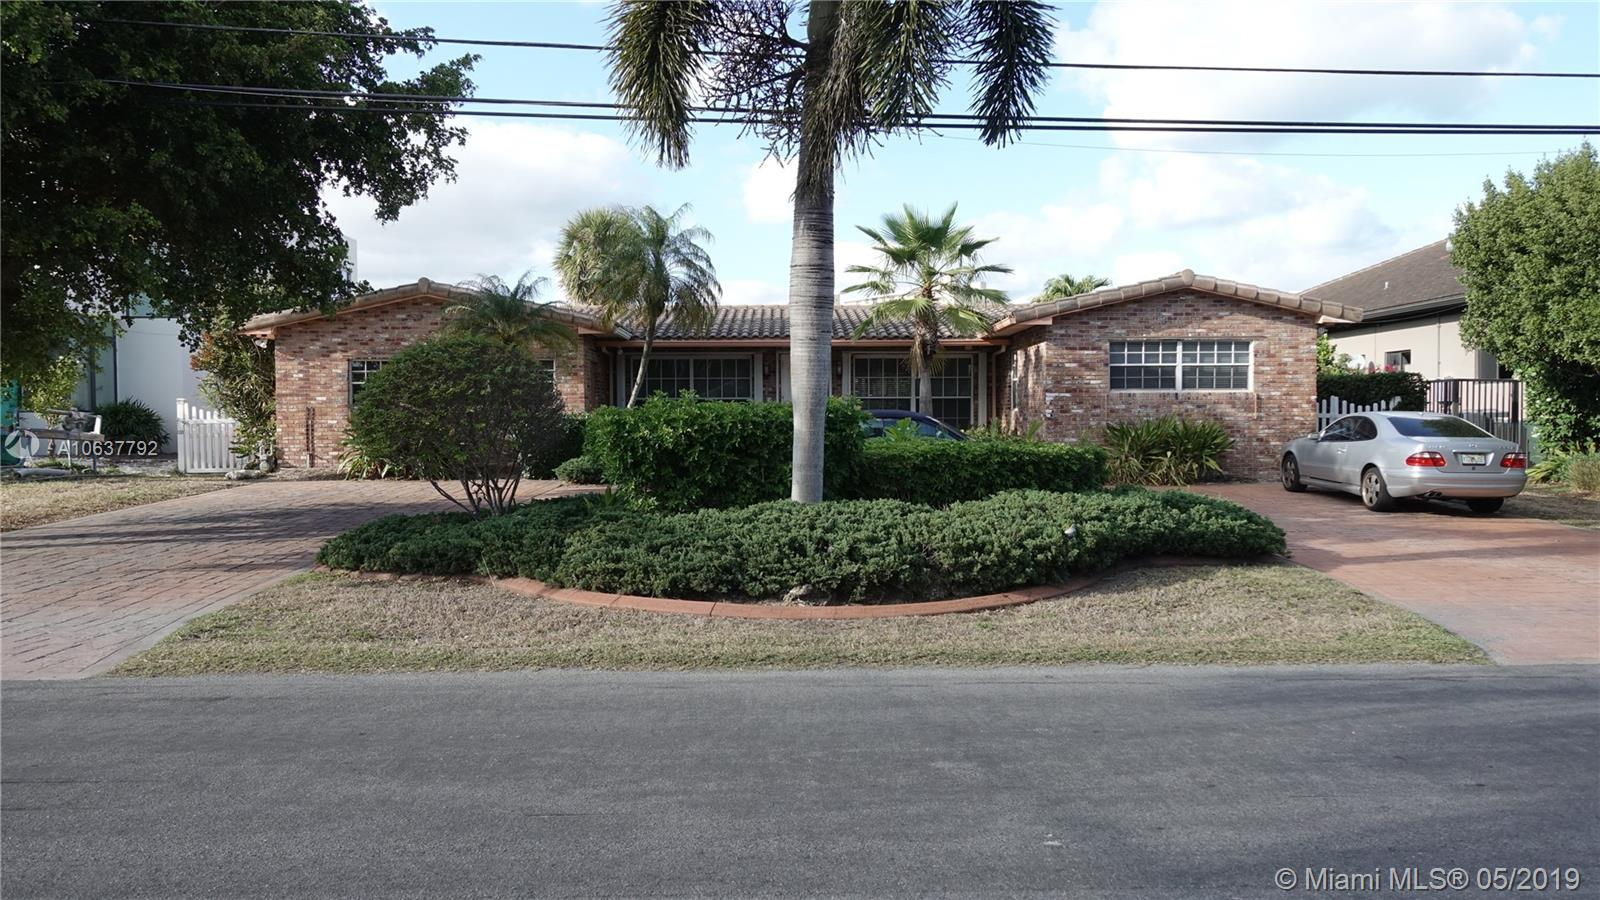 436  Sunset Dr  For Sale A10637792, FL